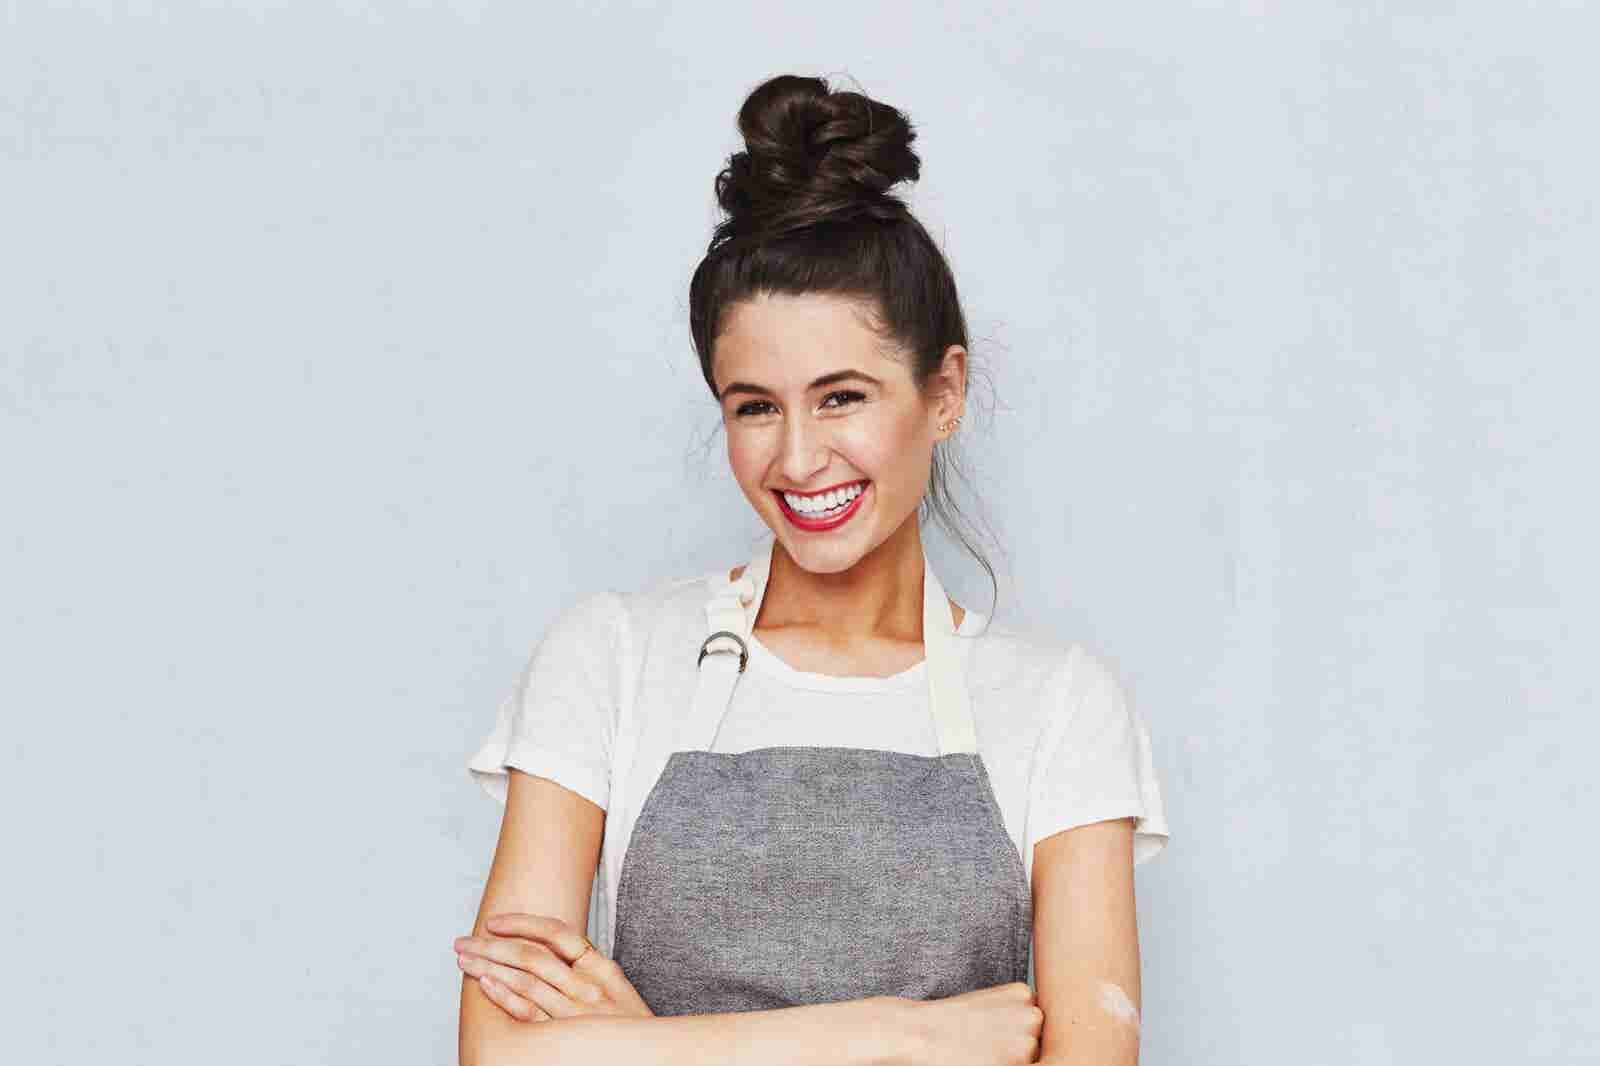 Vegan Celebrity Chef Chloe Coscarelli Says Entrepreneurs Should Push for Change Even When No One Believes in Them